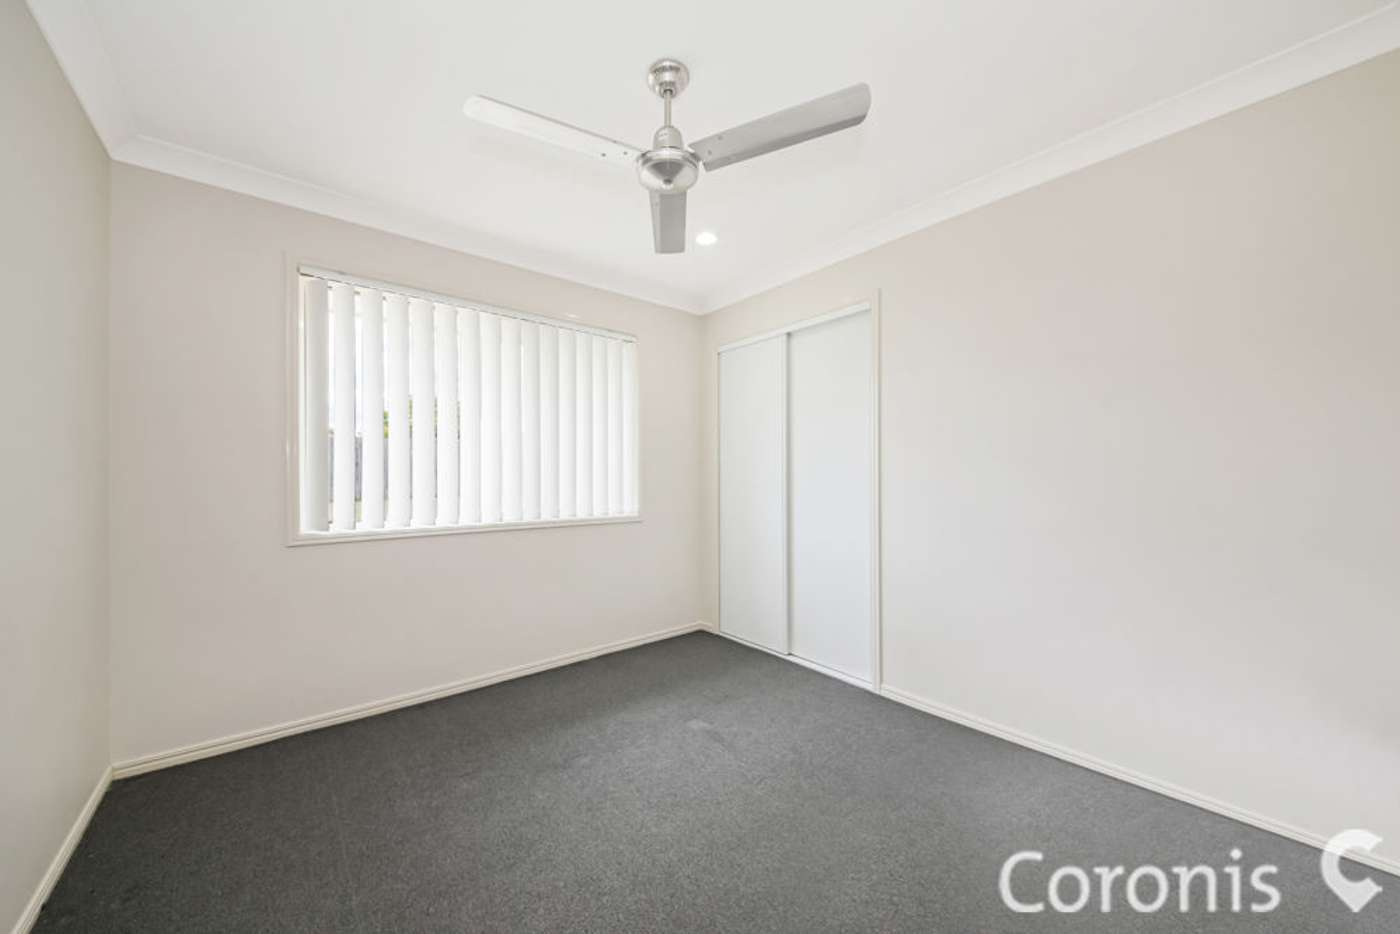 Sixth view of Homely house listing, 8 Lukin Court, Brassall QLD 4305